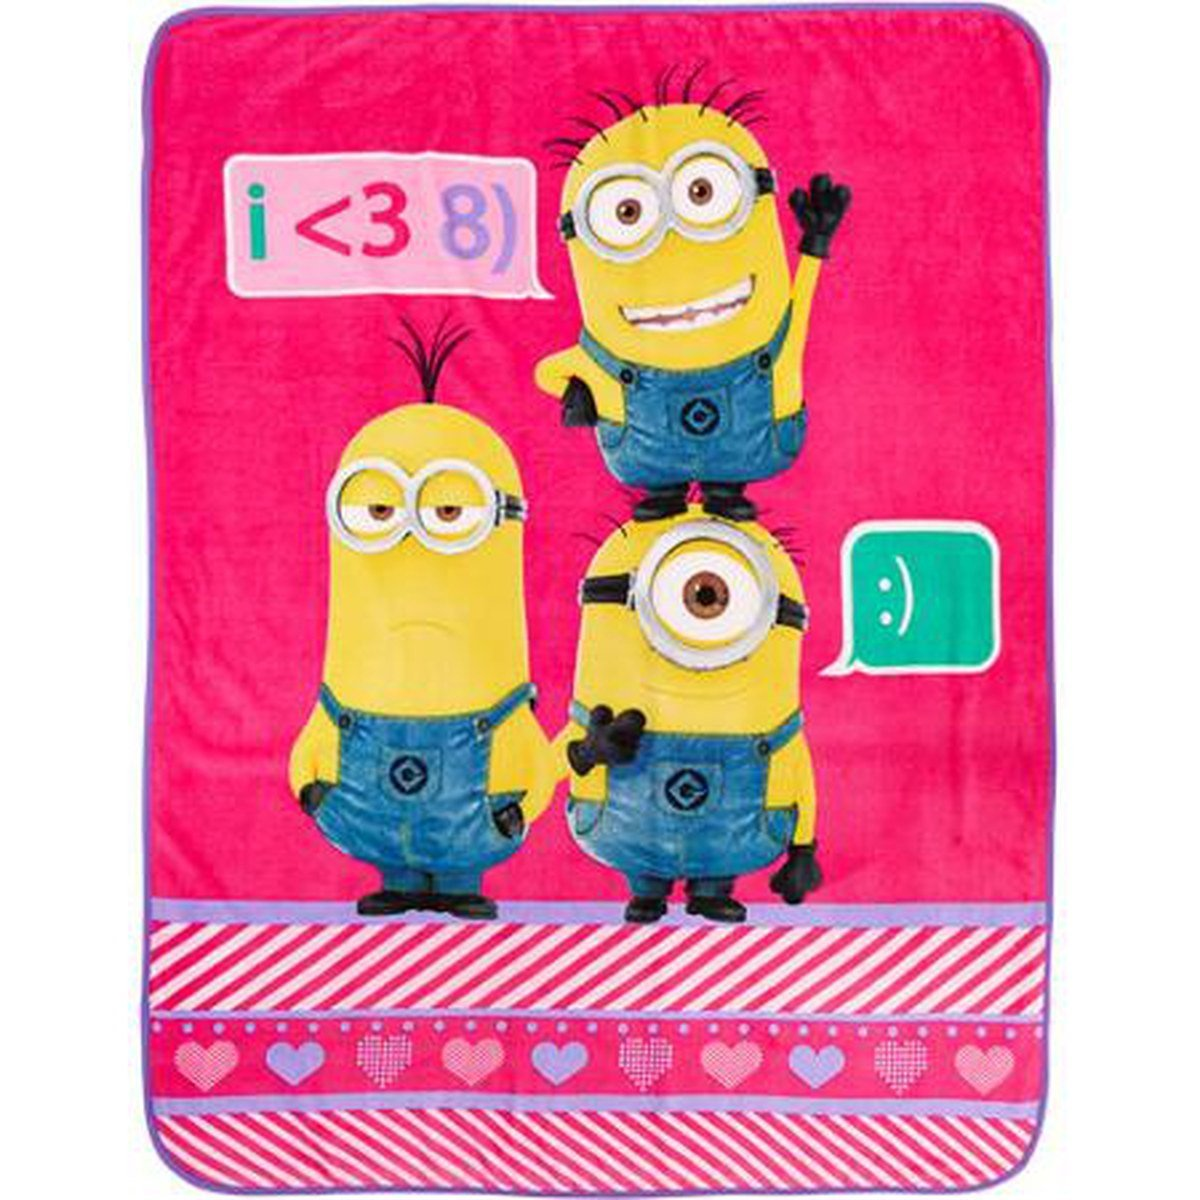 Despicable Me Minions Girls Plush Pink Throw - 117 cm x 152 cm Franco Manufacturing Co. Inc. A3191W